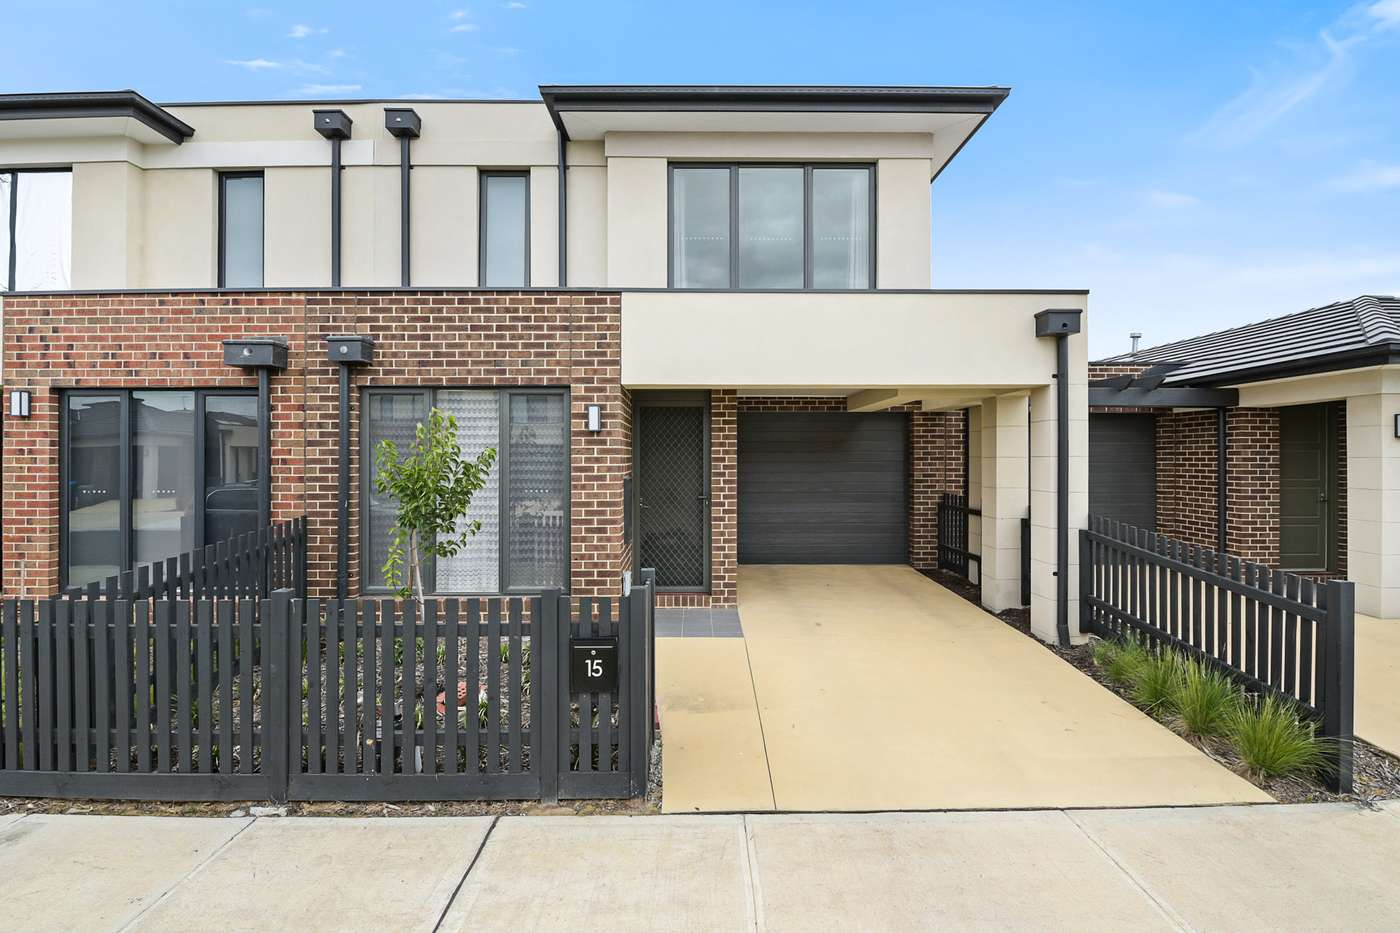 Main view of Homely house listing, 15 Goshawk Street, Narre Warren, VIC 3805